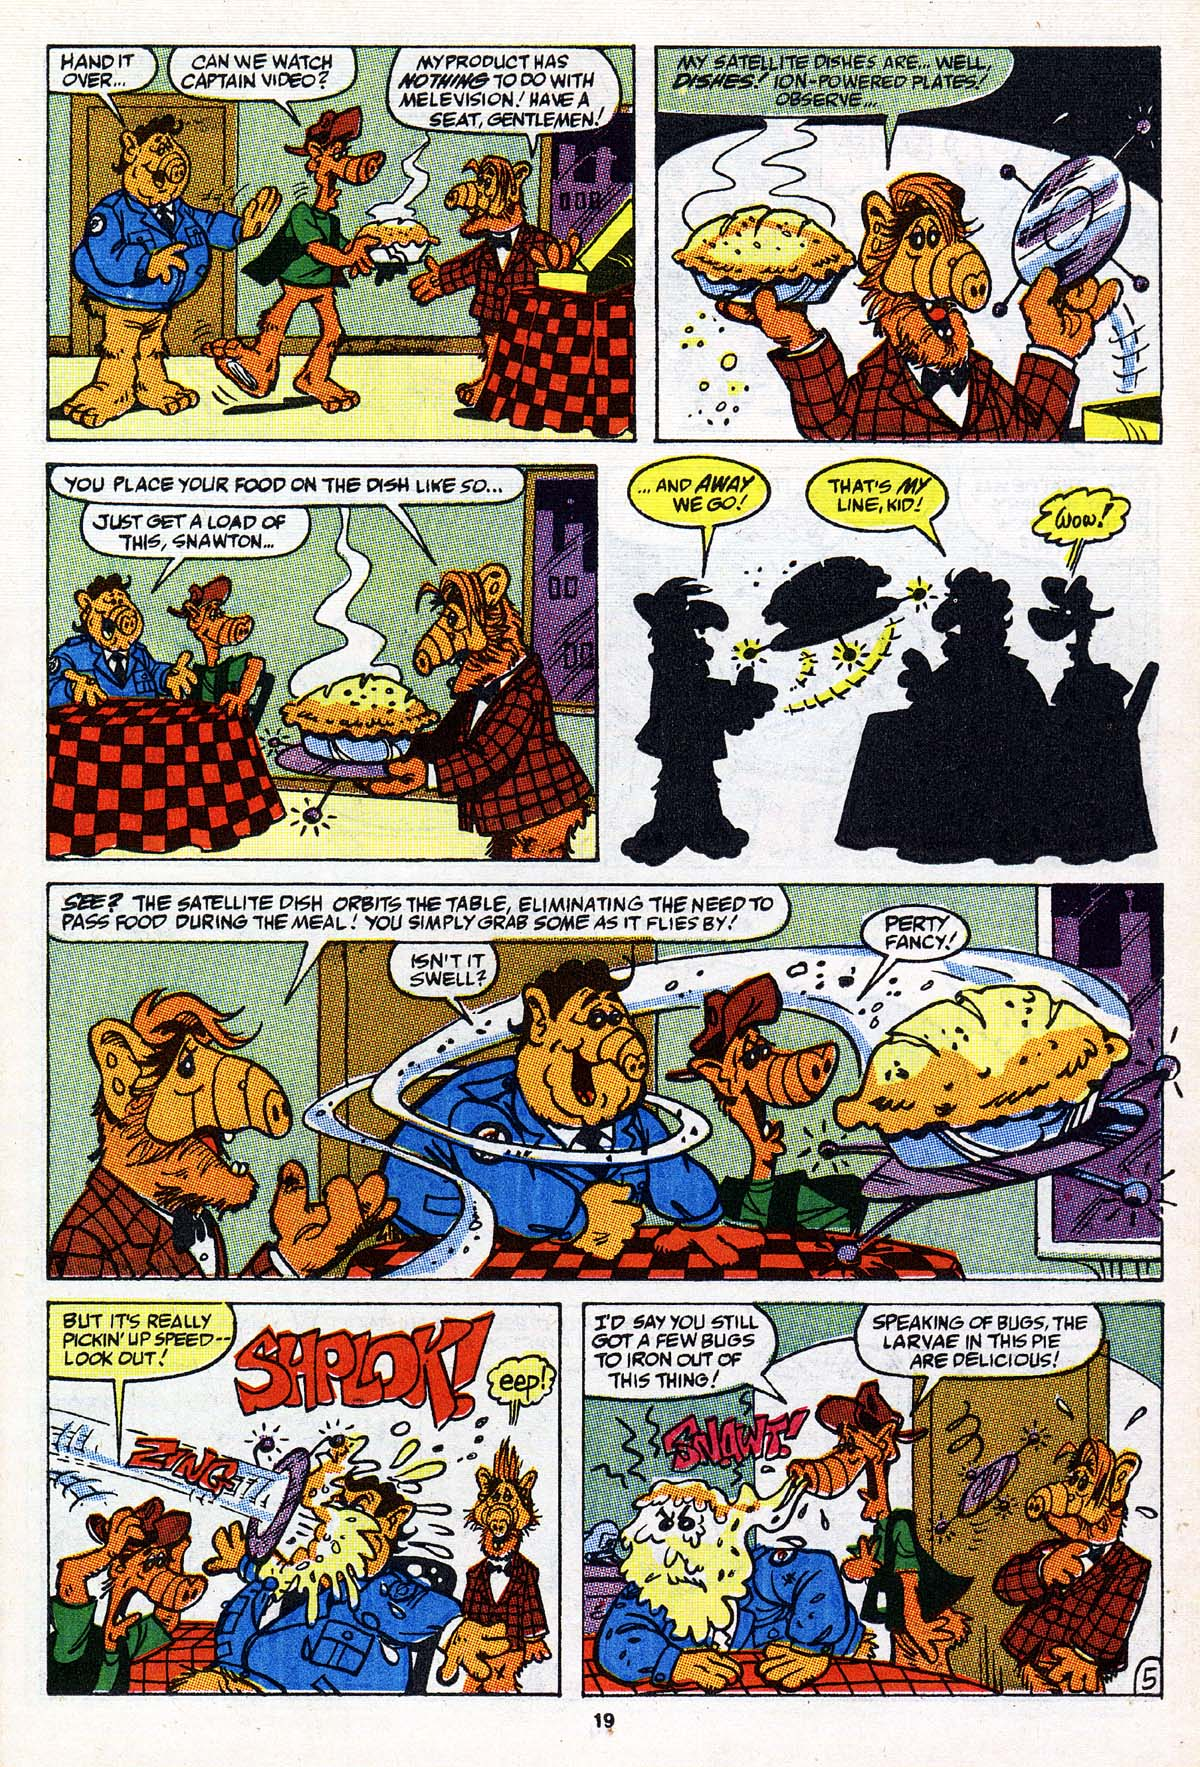 Read online ALF comic -  Issue #27 - 16